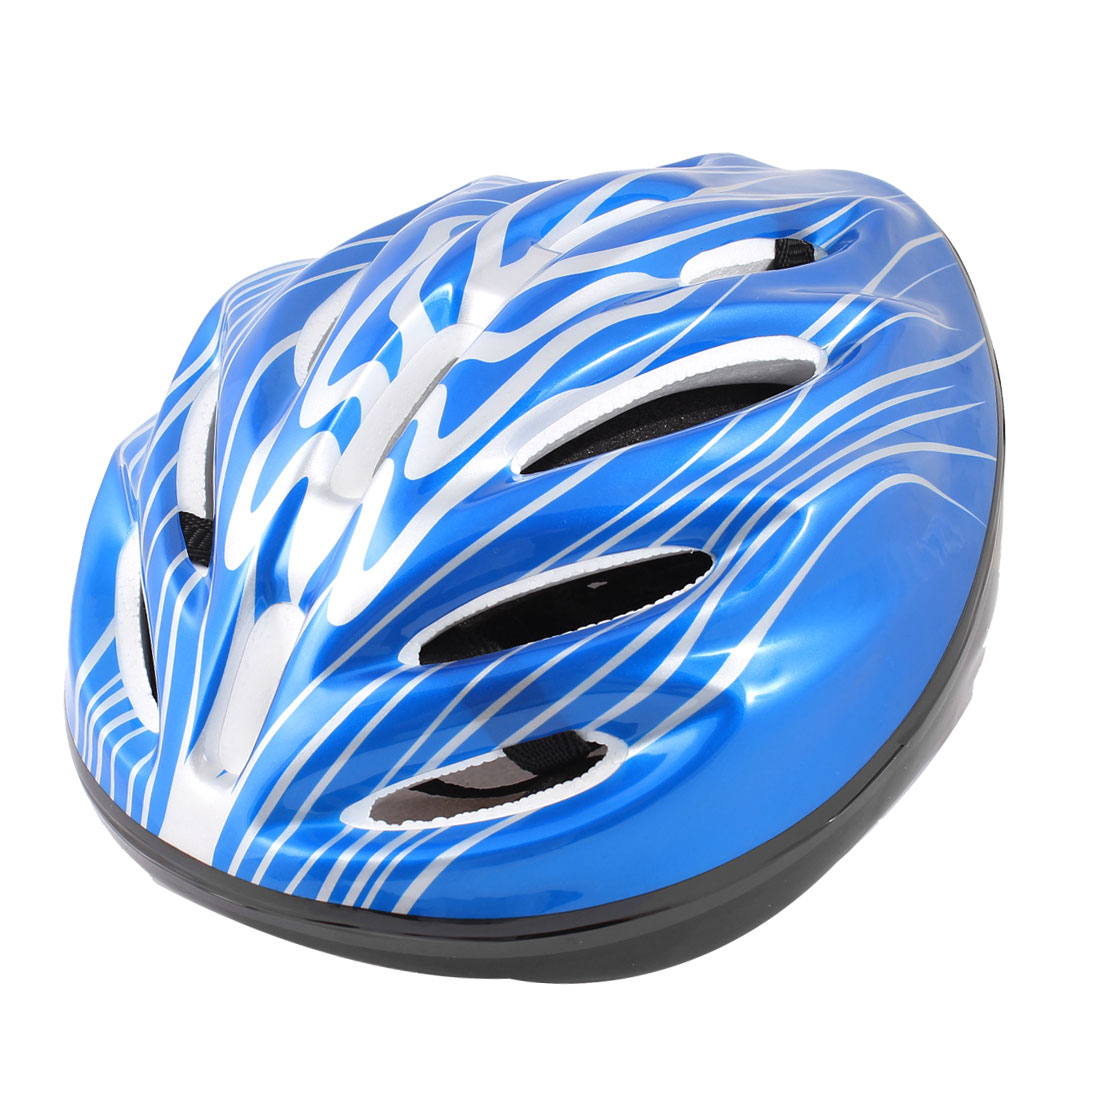 Adults Stripes Pattern Foam Sports Cycling Skating Helmet White Blue Black